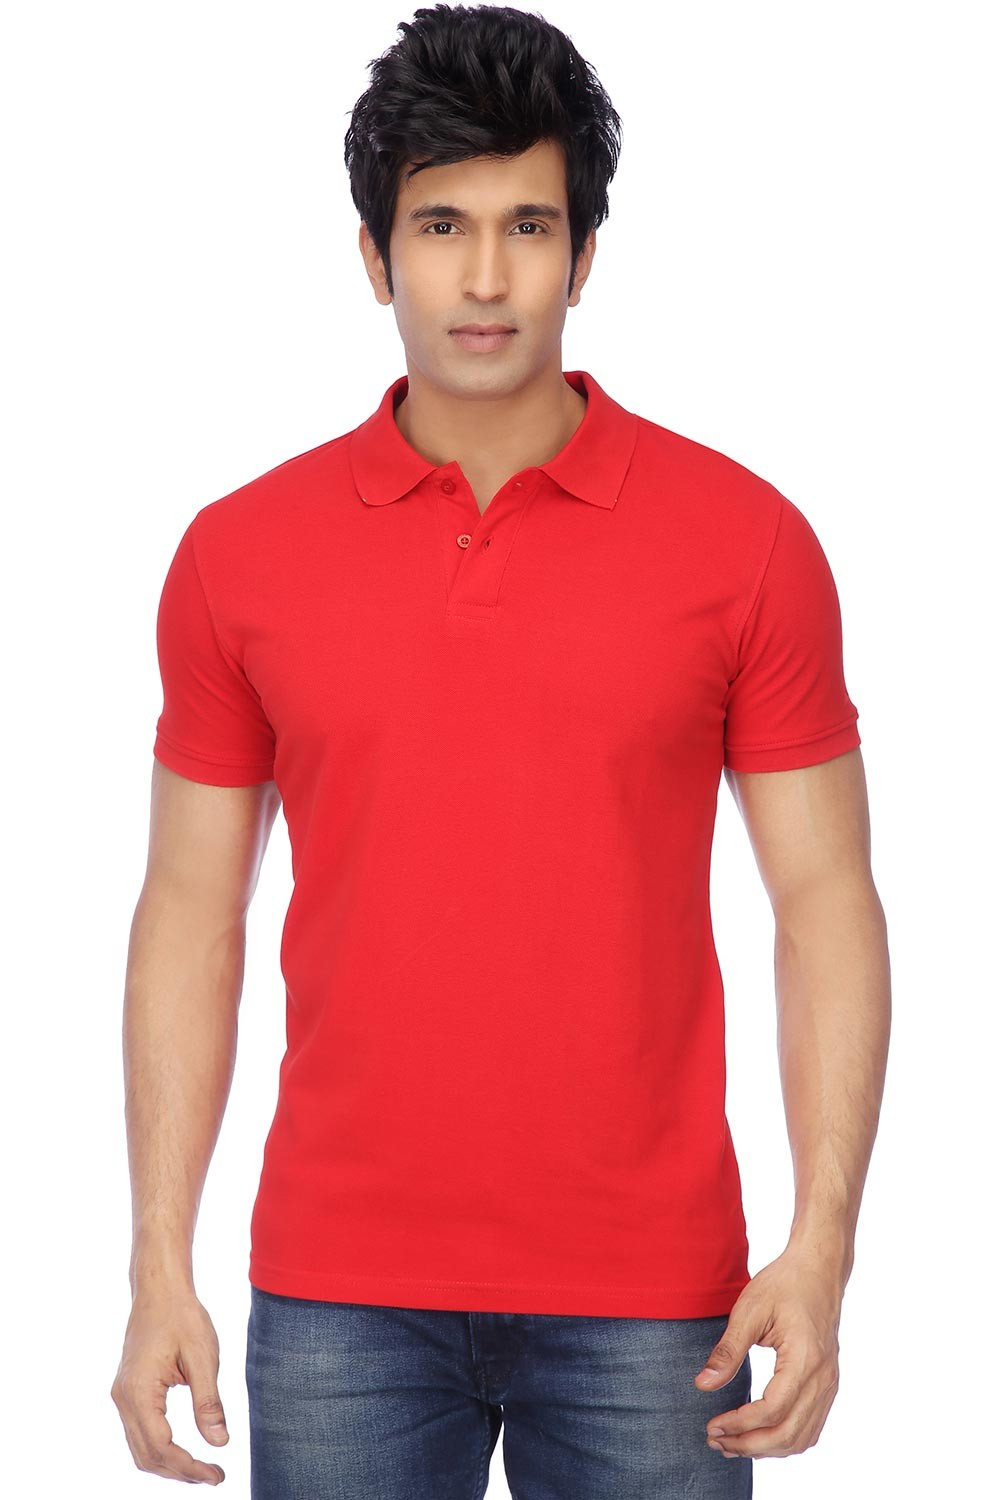 Funky Guys Polyester Cotton Red Plain Polo T Shirt